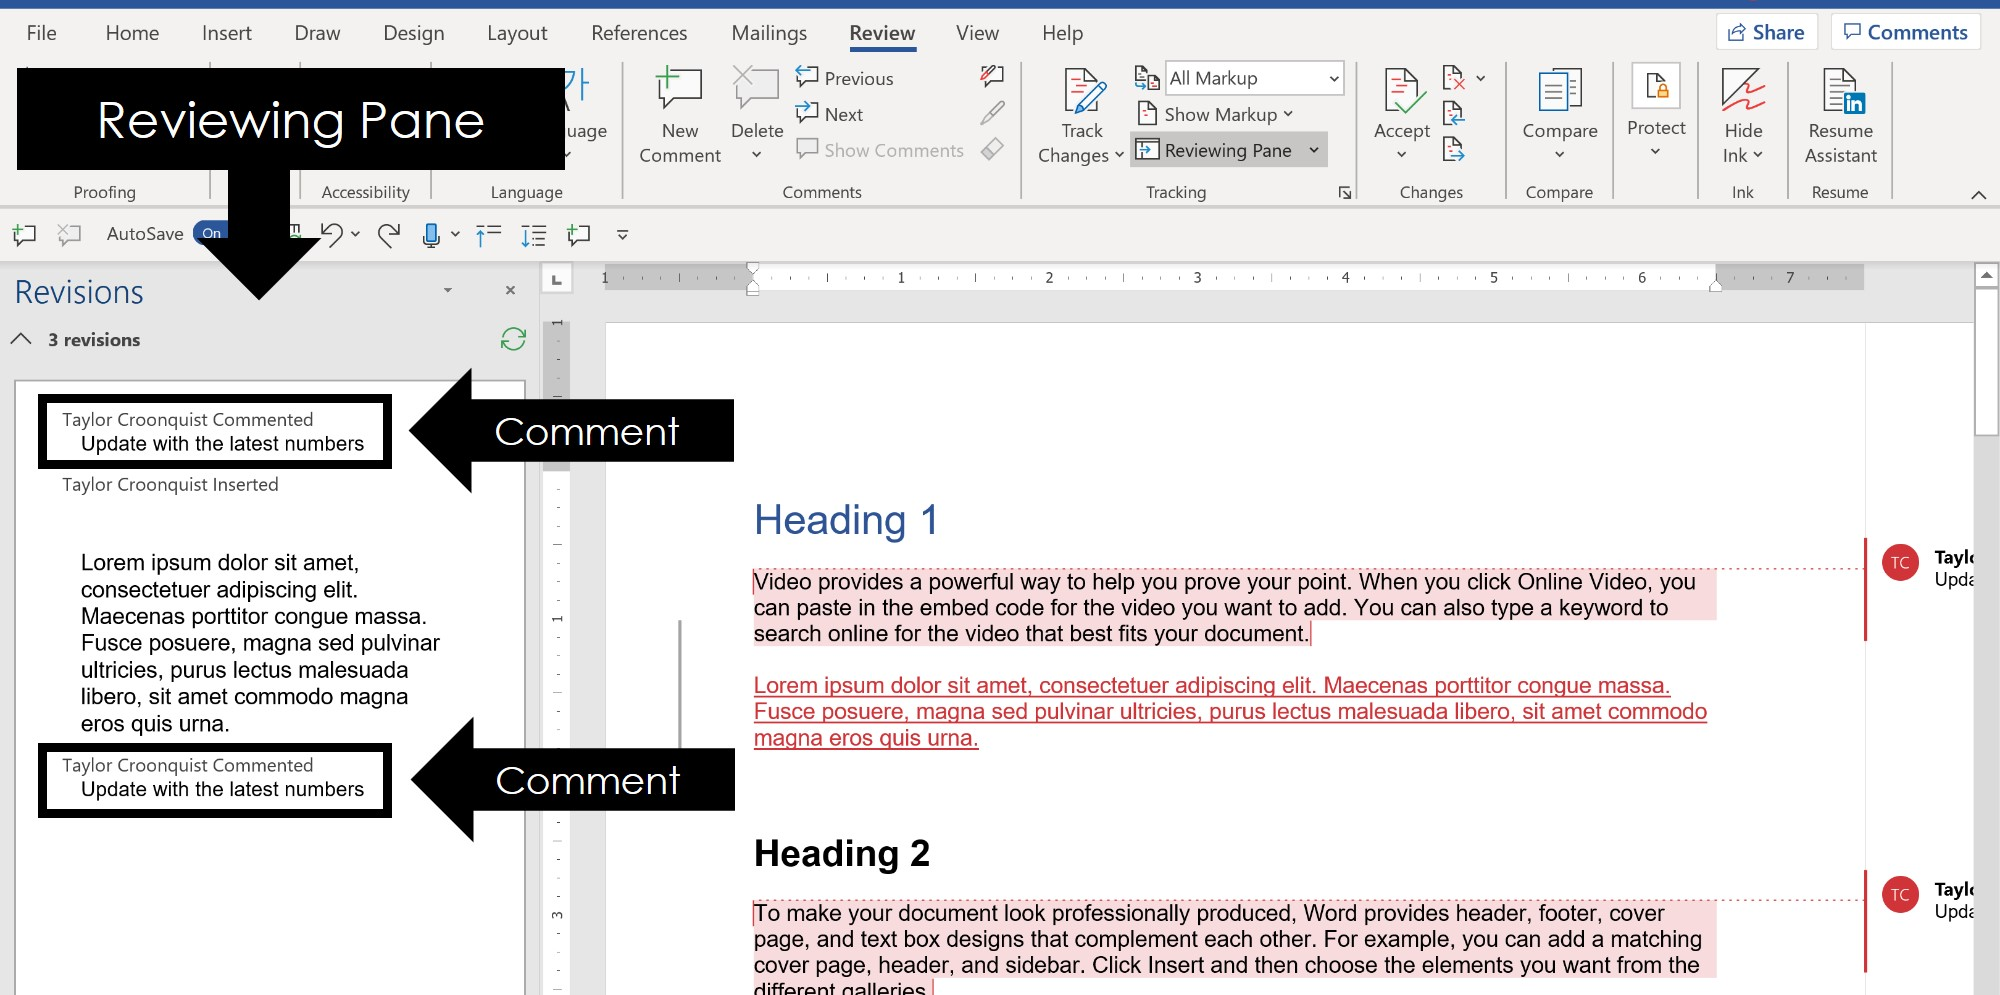 Inside the reviewing pane in word you can see any tracked changes and comments inside your document